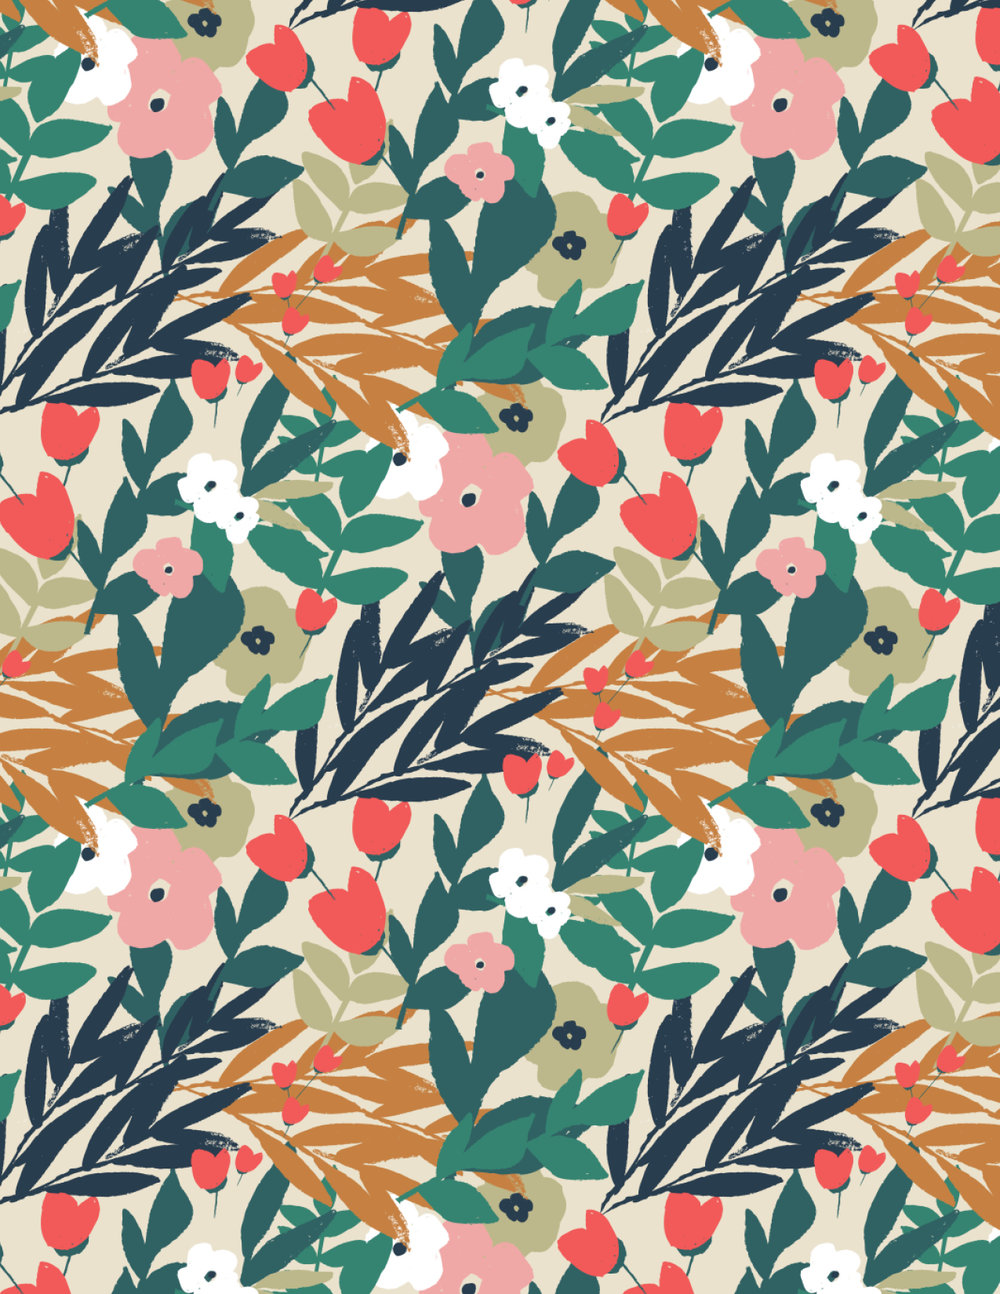 Jessbruggink_patterns_new13.jpg